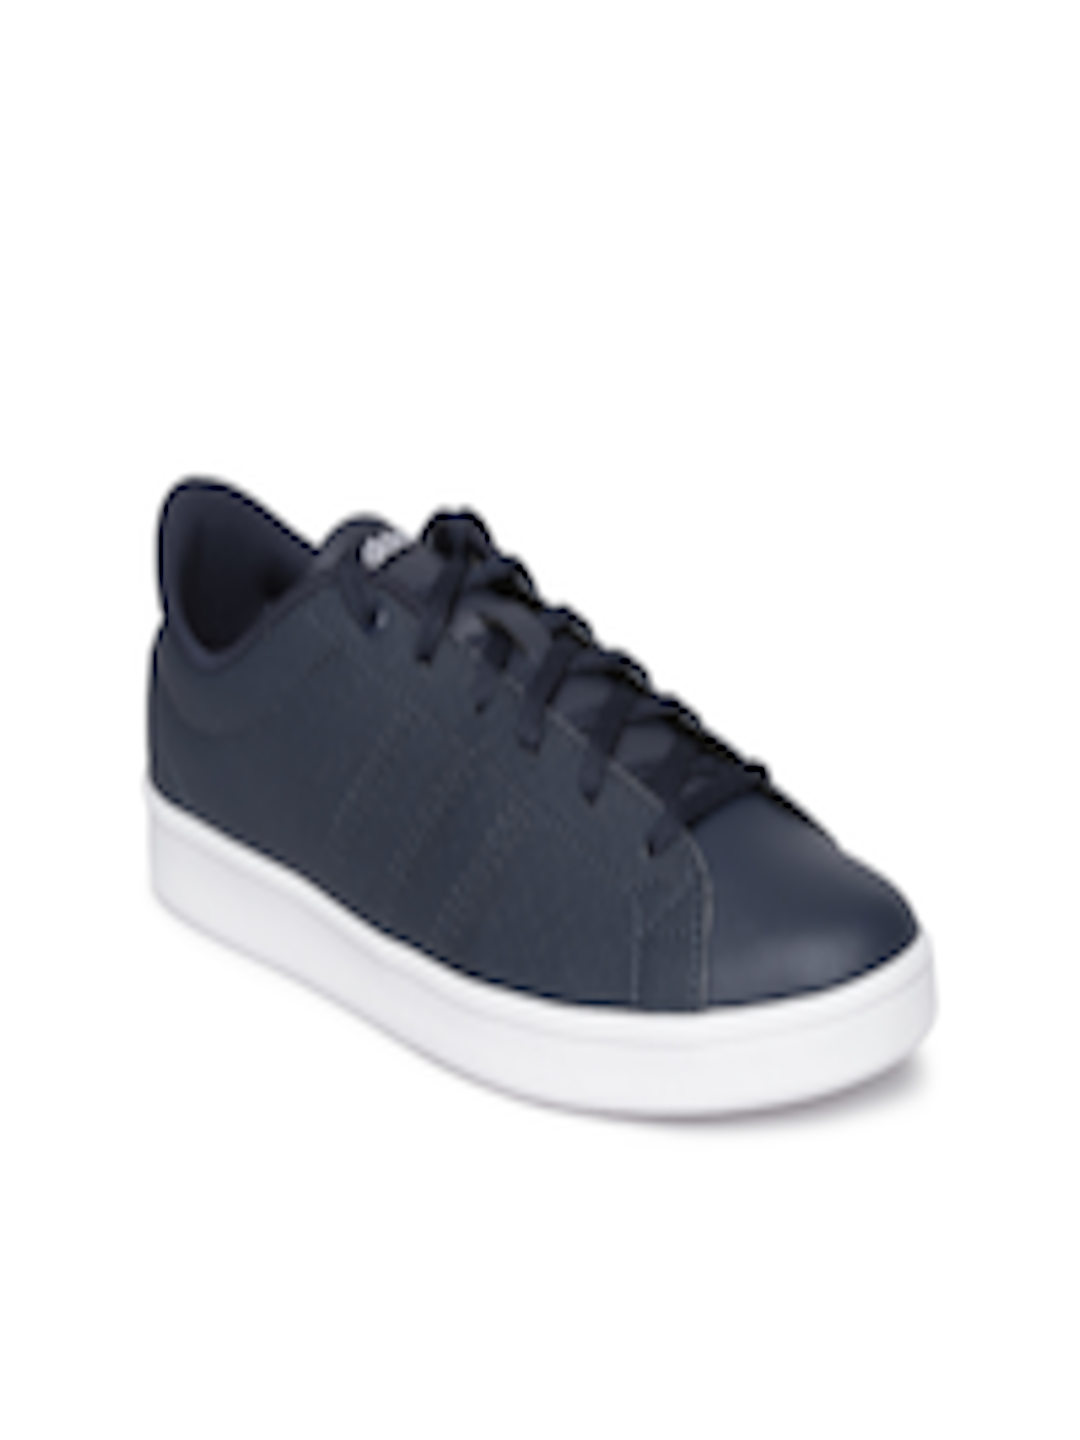 7443e21ff66b2 Buy ADIDAS NEO Women Navy ADVANTAGE Clean QT Sneakers - Casual Shoes for  Women 1989214 | Myntra